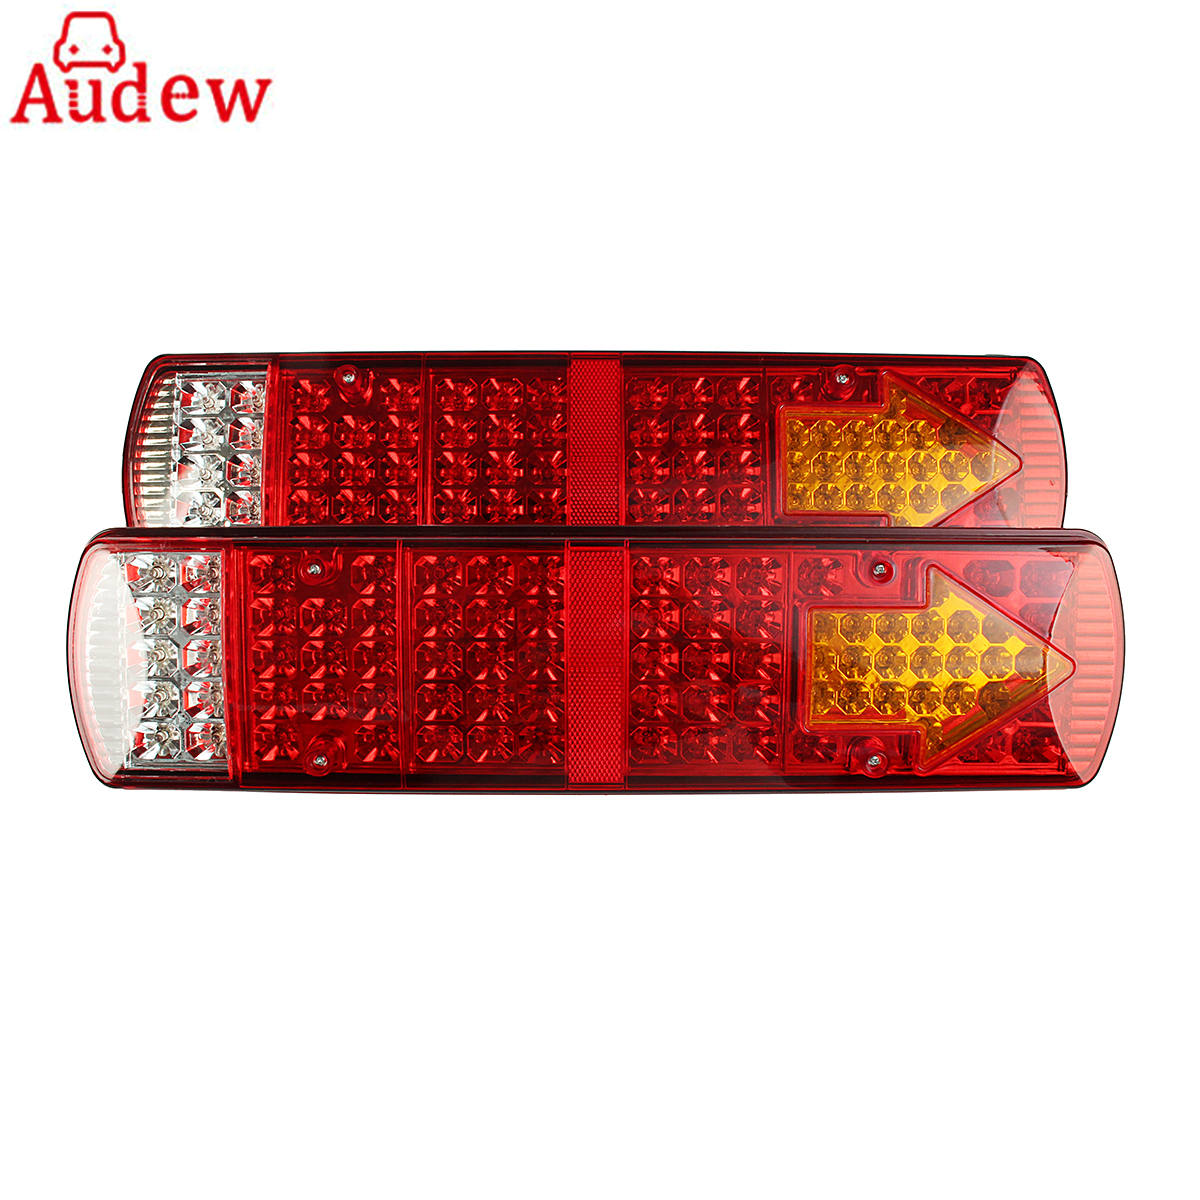 1Pair 24V Car Turn Lamp Rear Tail Lights LED Lamps 5 Function  for Trailer Lorry Truck Recovery 87 LED Red car styling tail lights for toyota highlander 2015 led tail lamp rear trunk lamp cover drl signal brake reverse